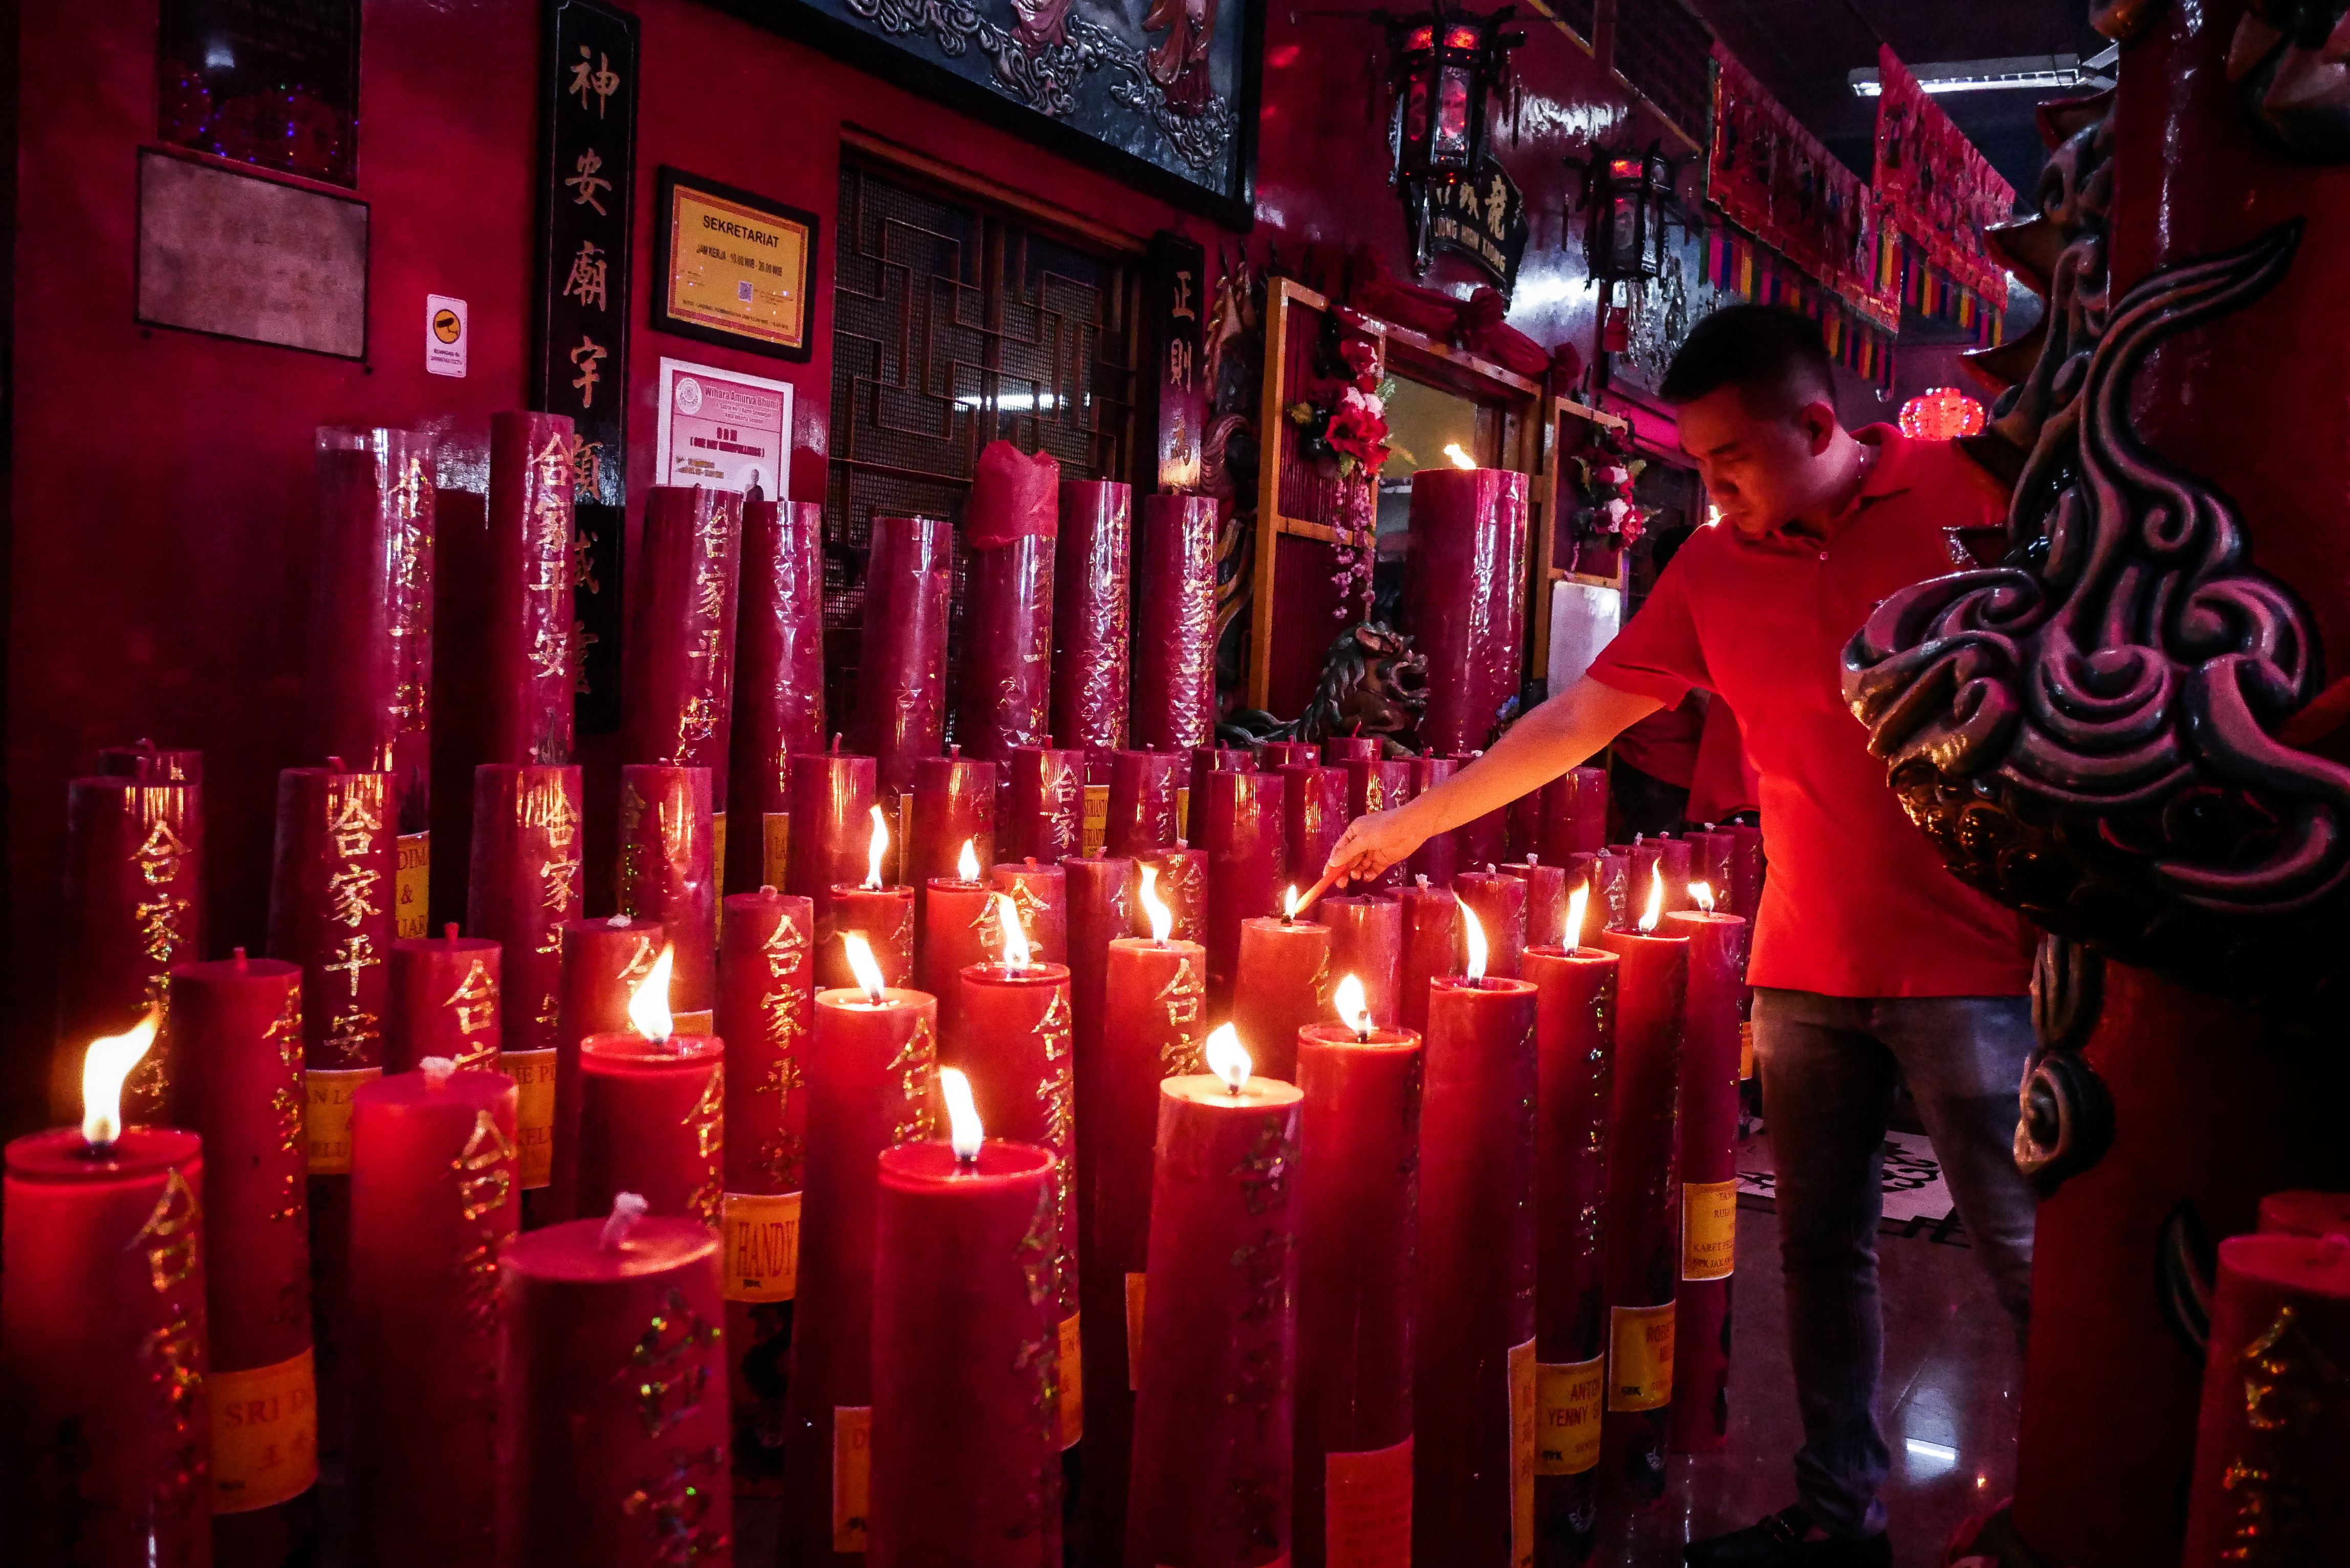 In this image, rows of red candles are lit